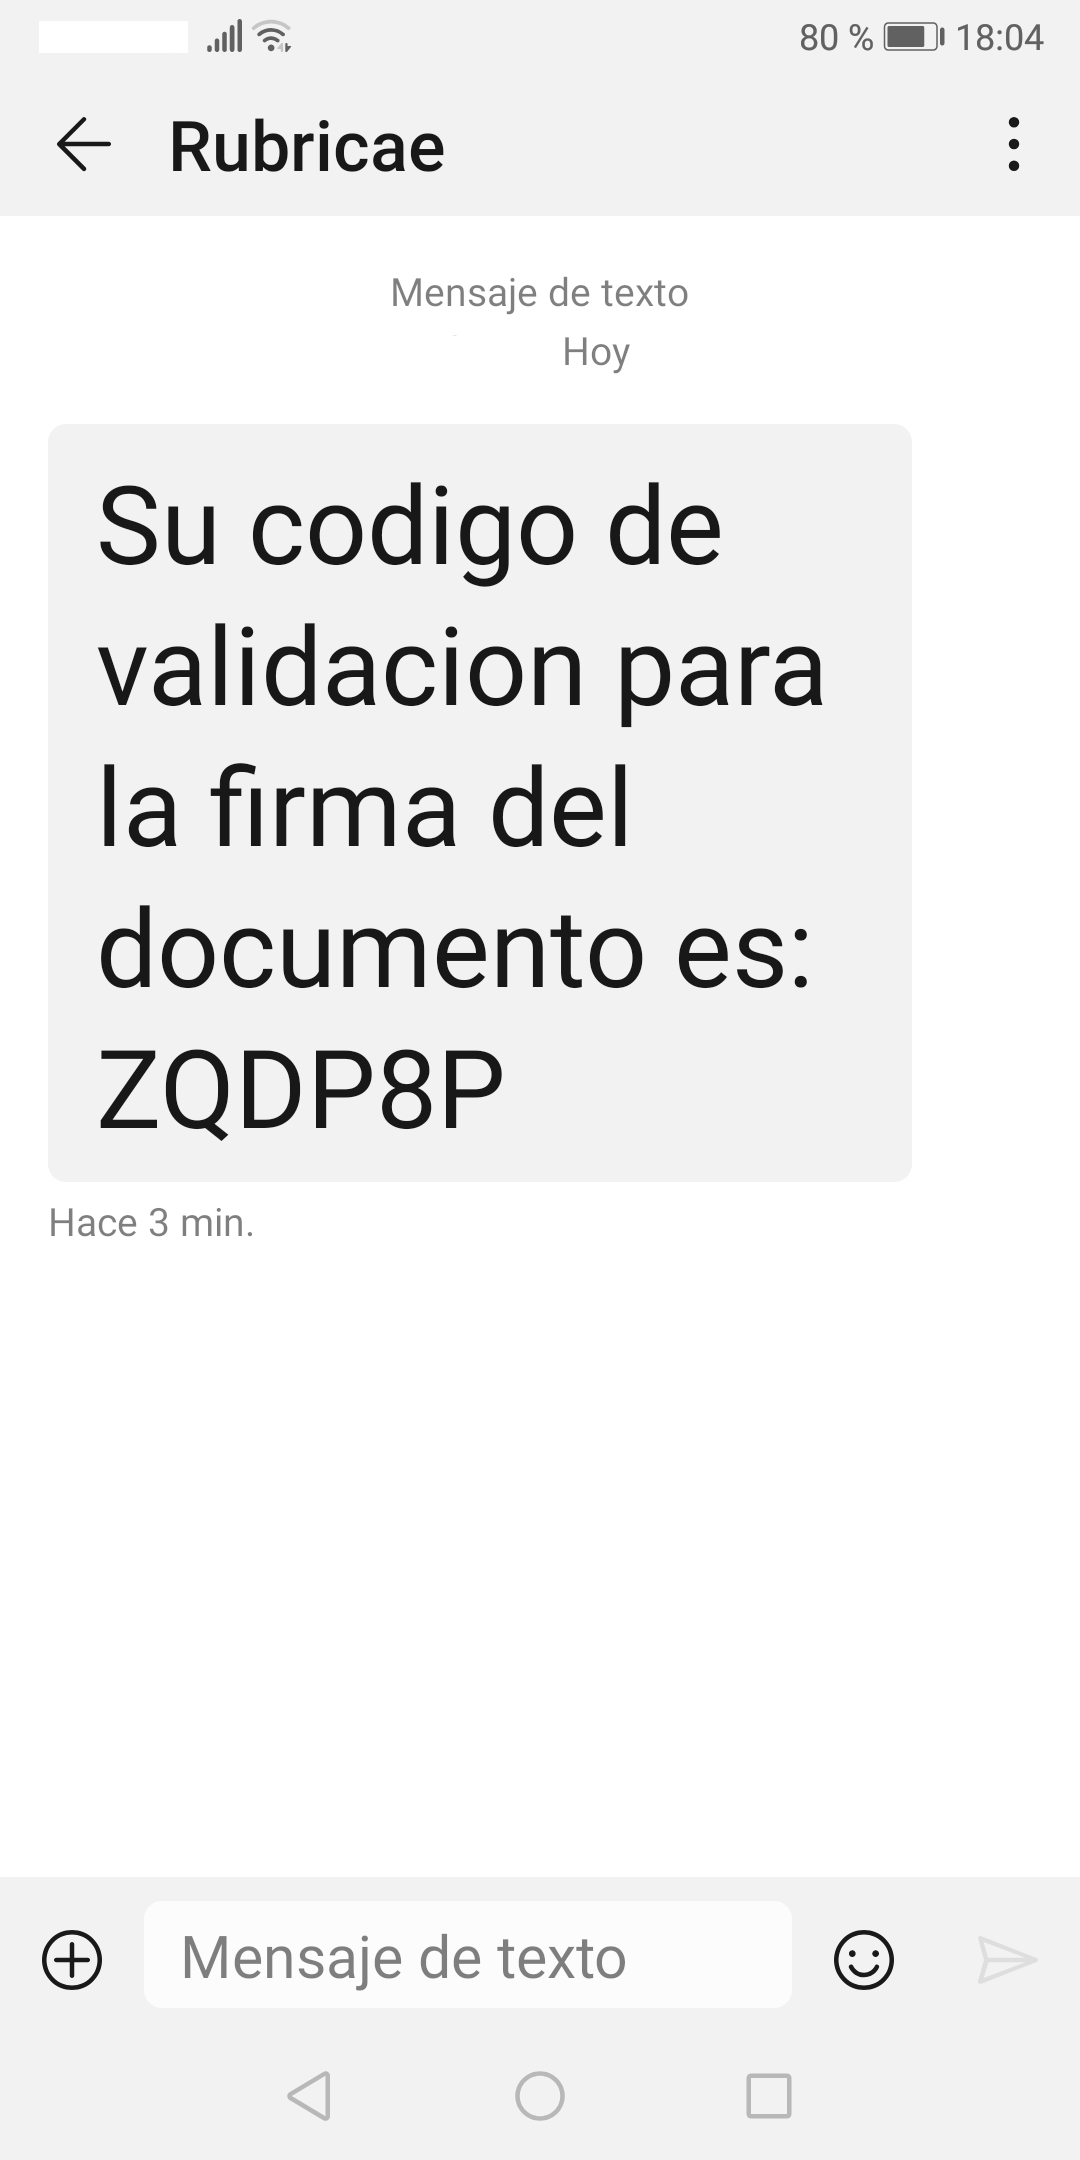 8._SMS_con_clave_para_completar_firma.png